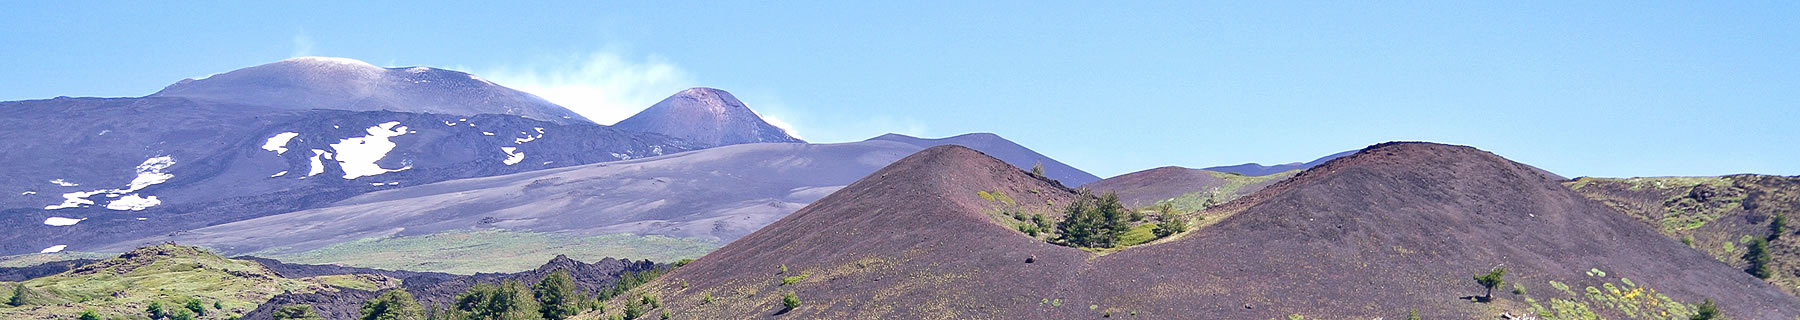 Offers and ideas - Mount Etna